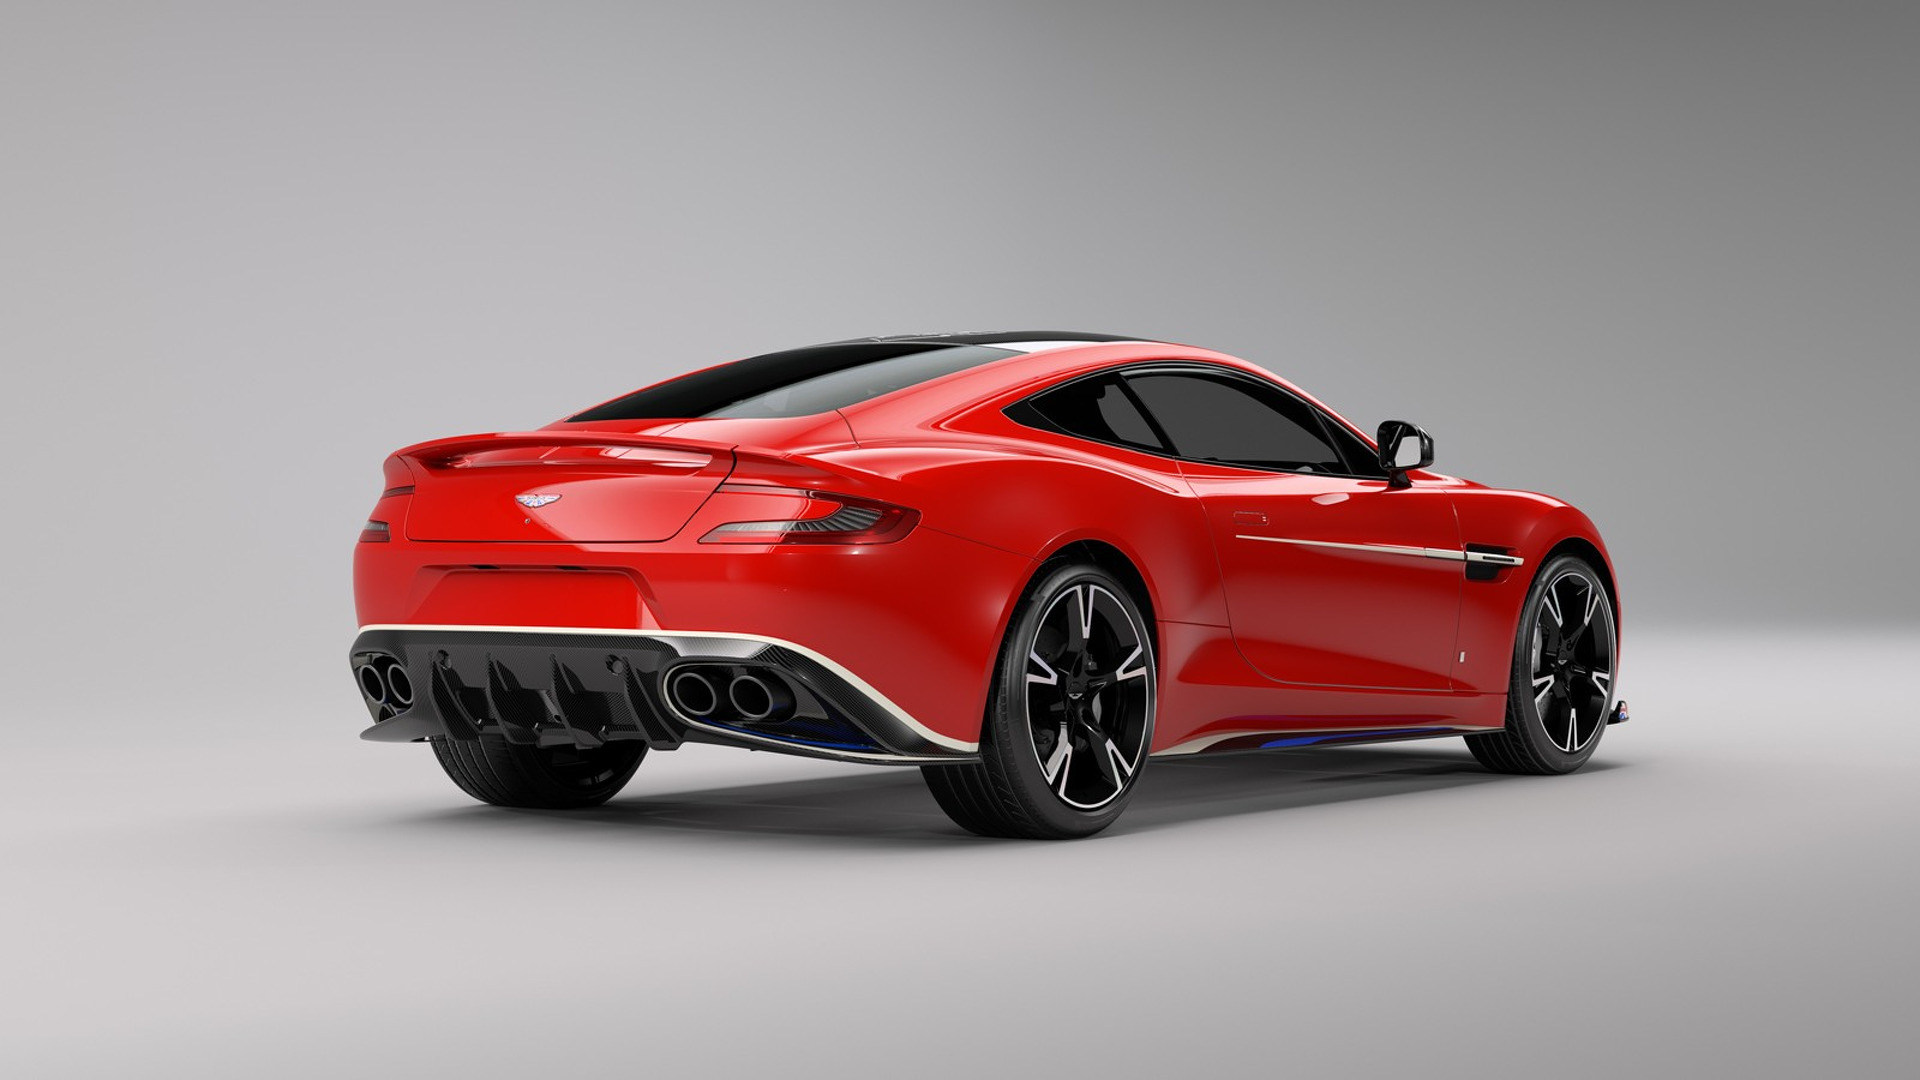 aston martin vanquish s red arrows edition. Black Bedroom Furniture Sets. Home Design Ideas